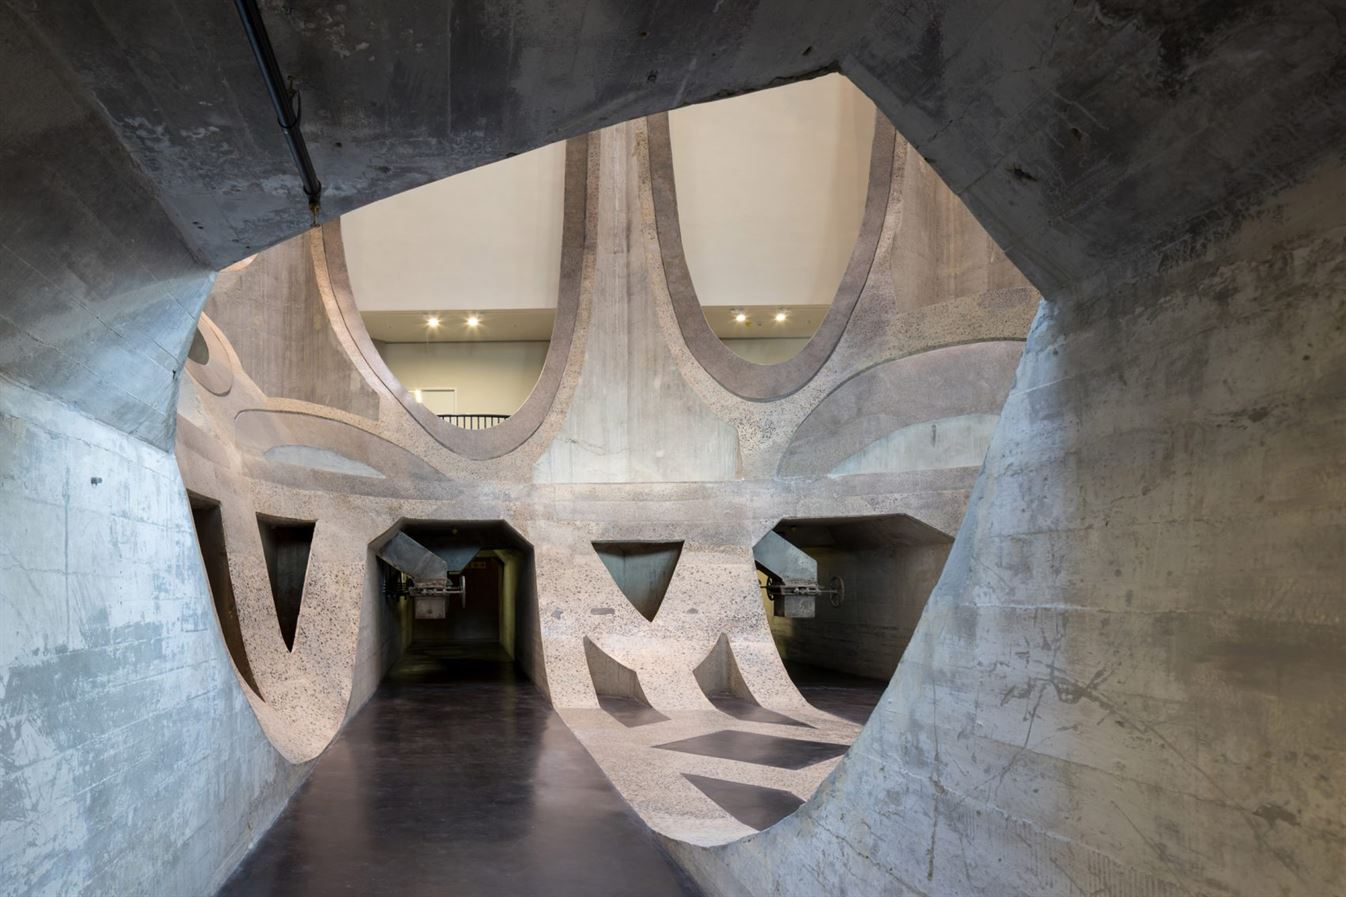 heatherwick-architecture-cultural-galleries-v-and-a-south-africa-interior_dezeen_2364_col_3-1704x1136